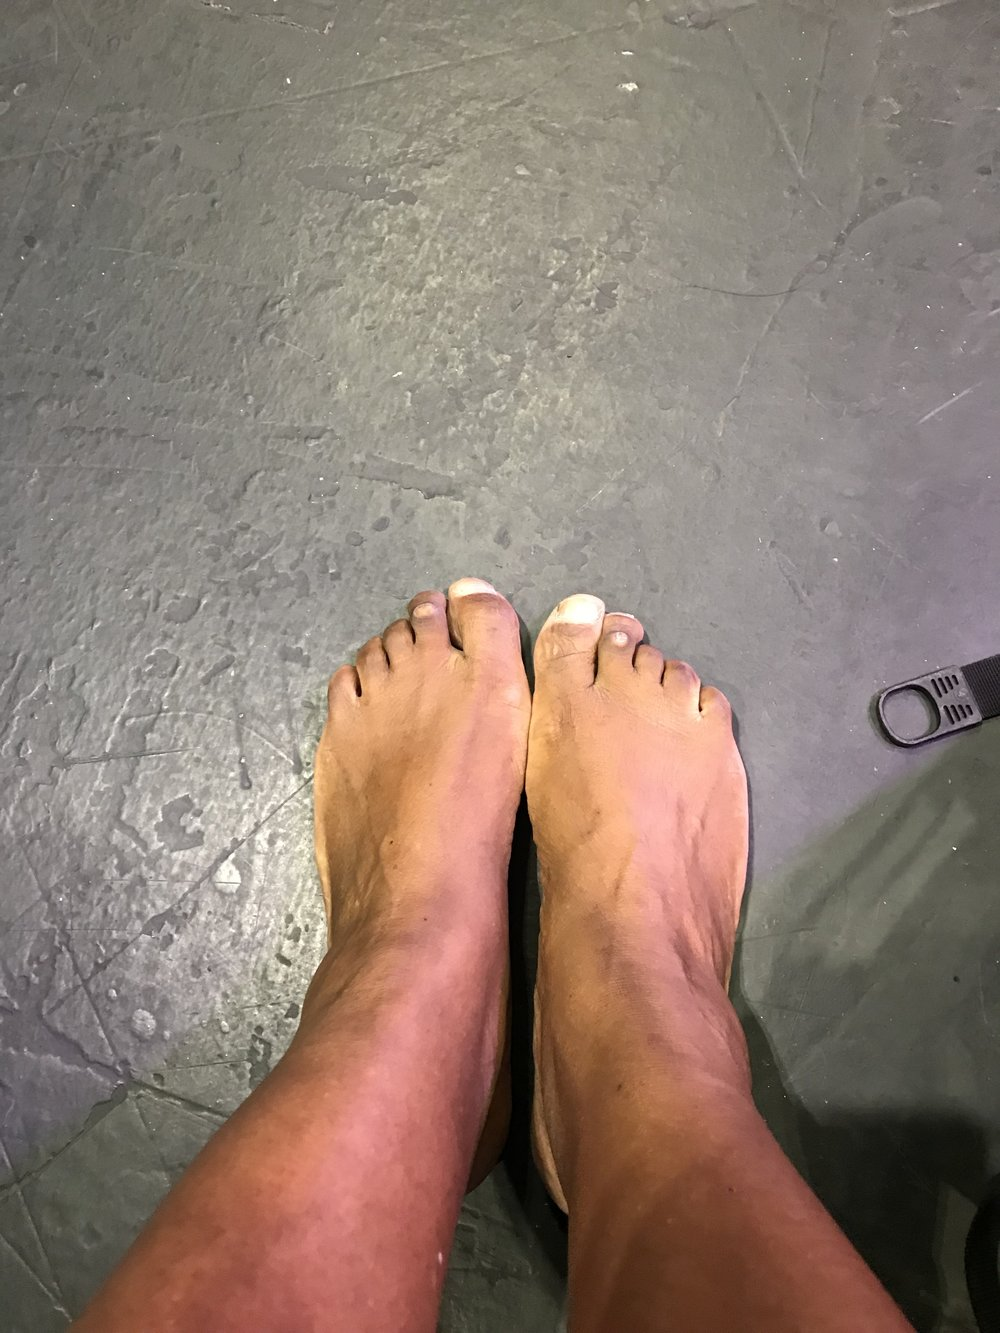 My feet after the Firewalk